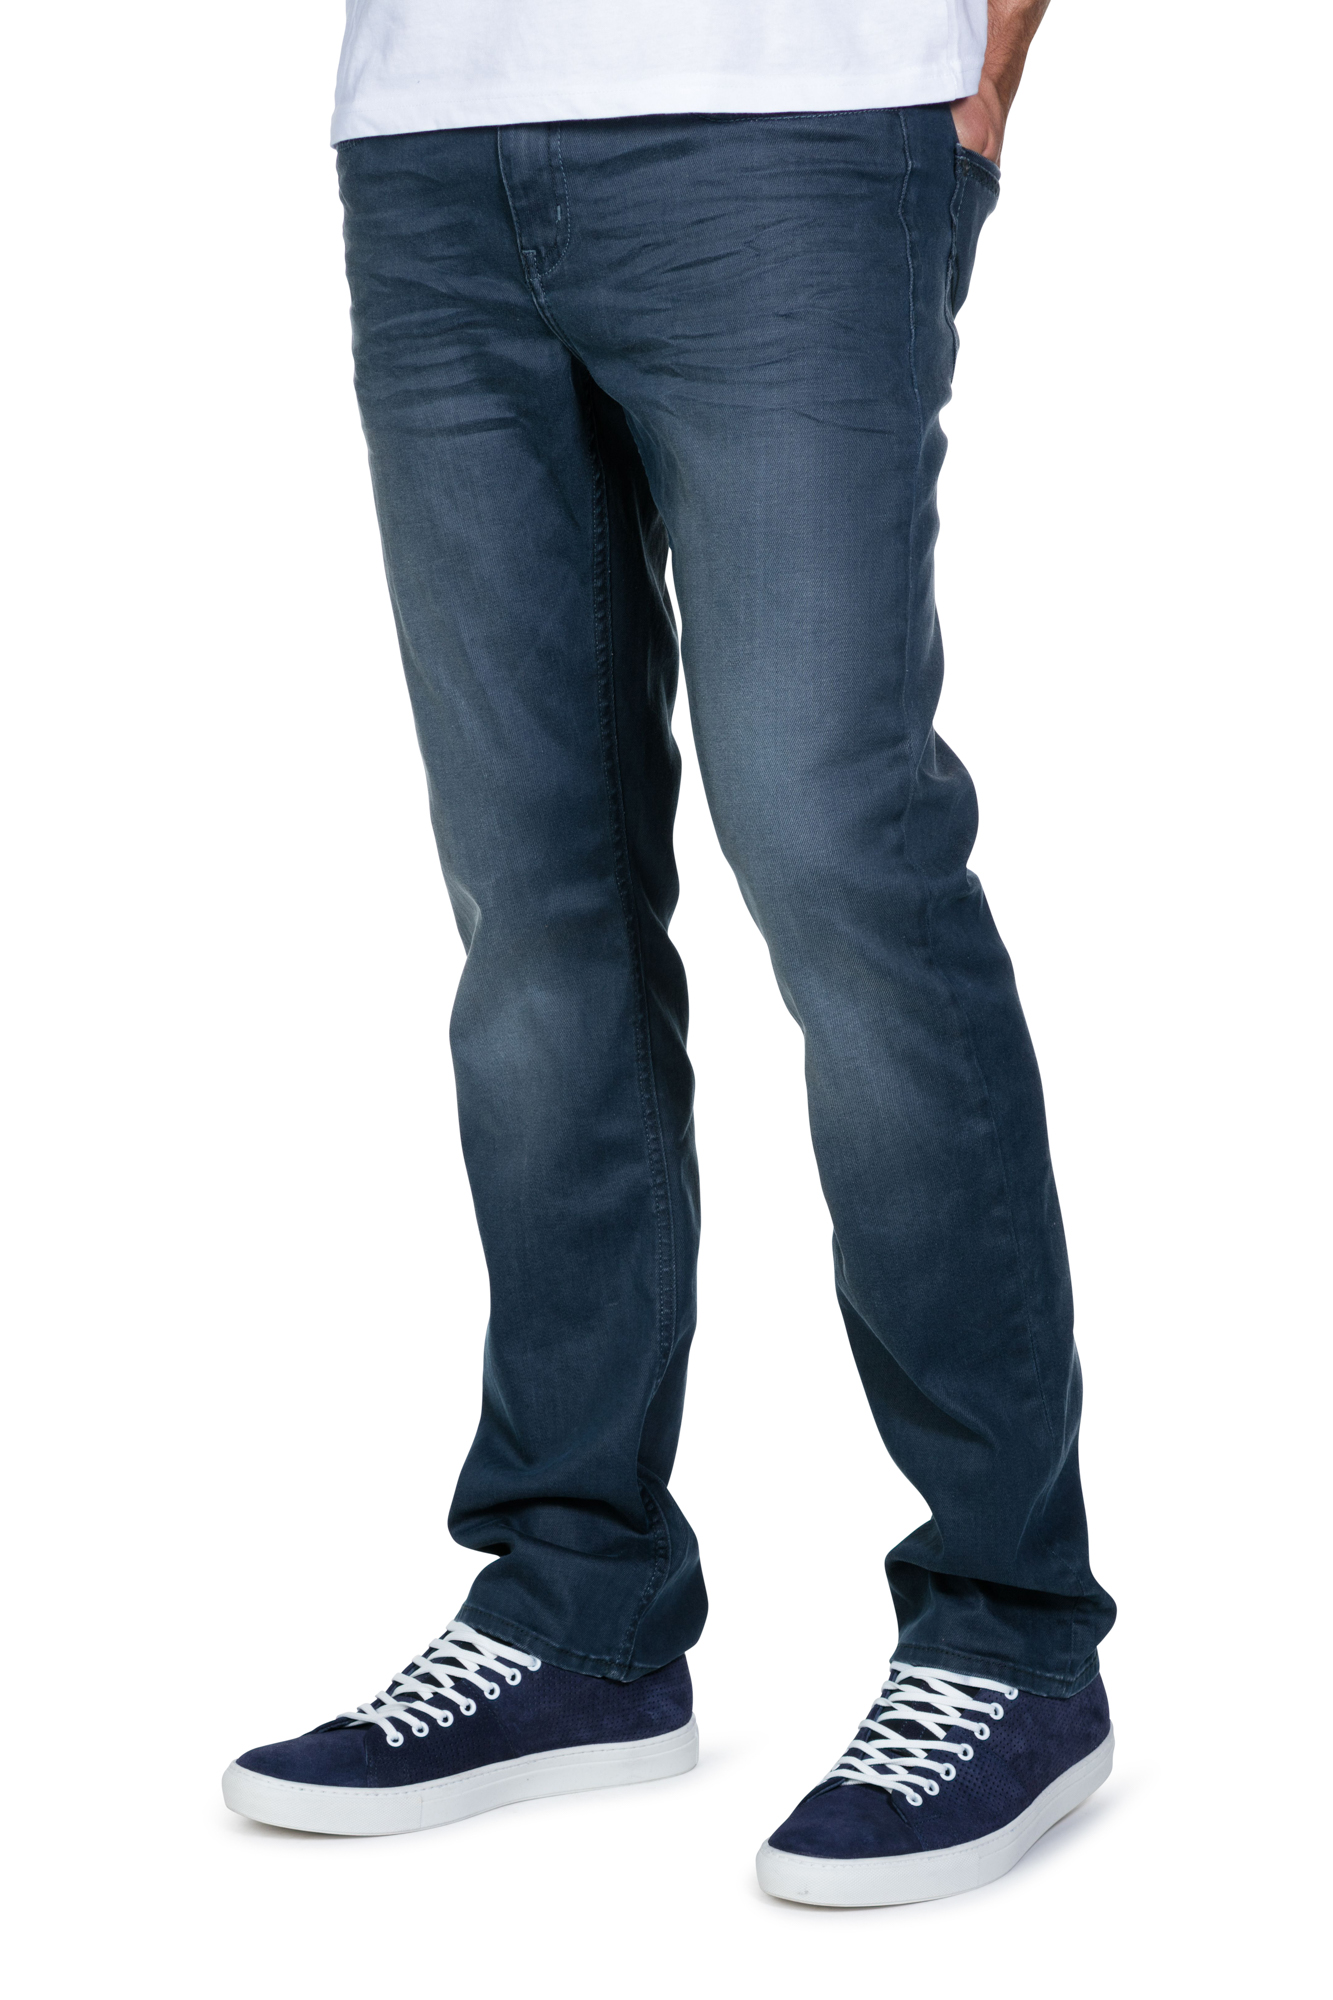 jeans_homme_redman_noah_denim_mock_medium_grey_2.jpg